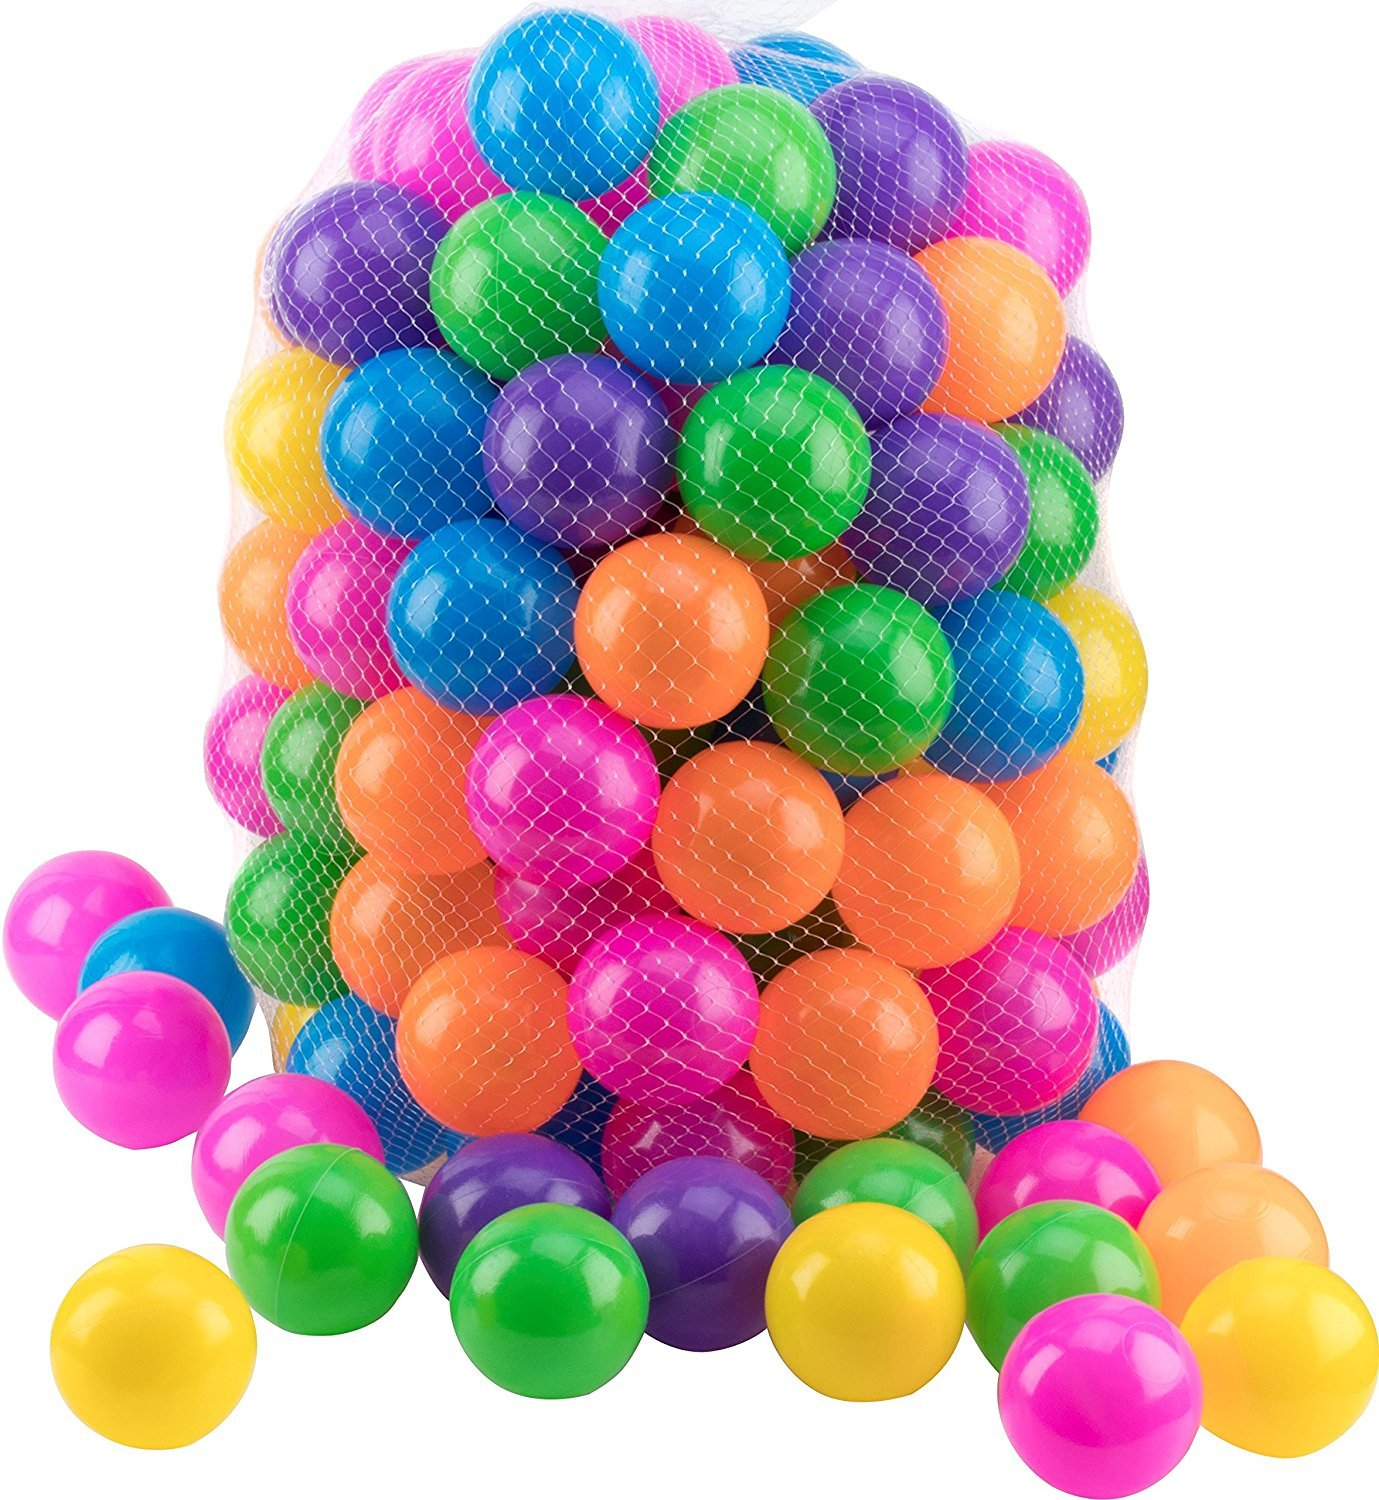 Play22 Ball Pit 100 Pack - Ball Pit Balls Crush Proof BPA Free - 6 Colors - Fun Ball Pit For Kids and Baby - Ball Pit For Any Ball Pool - Original 4251